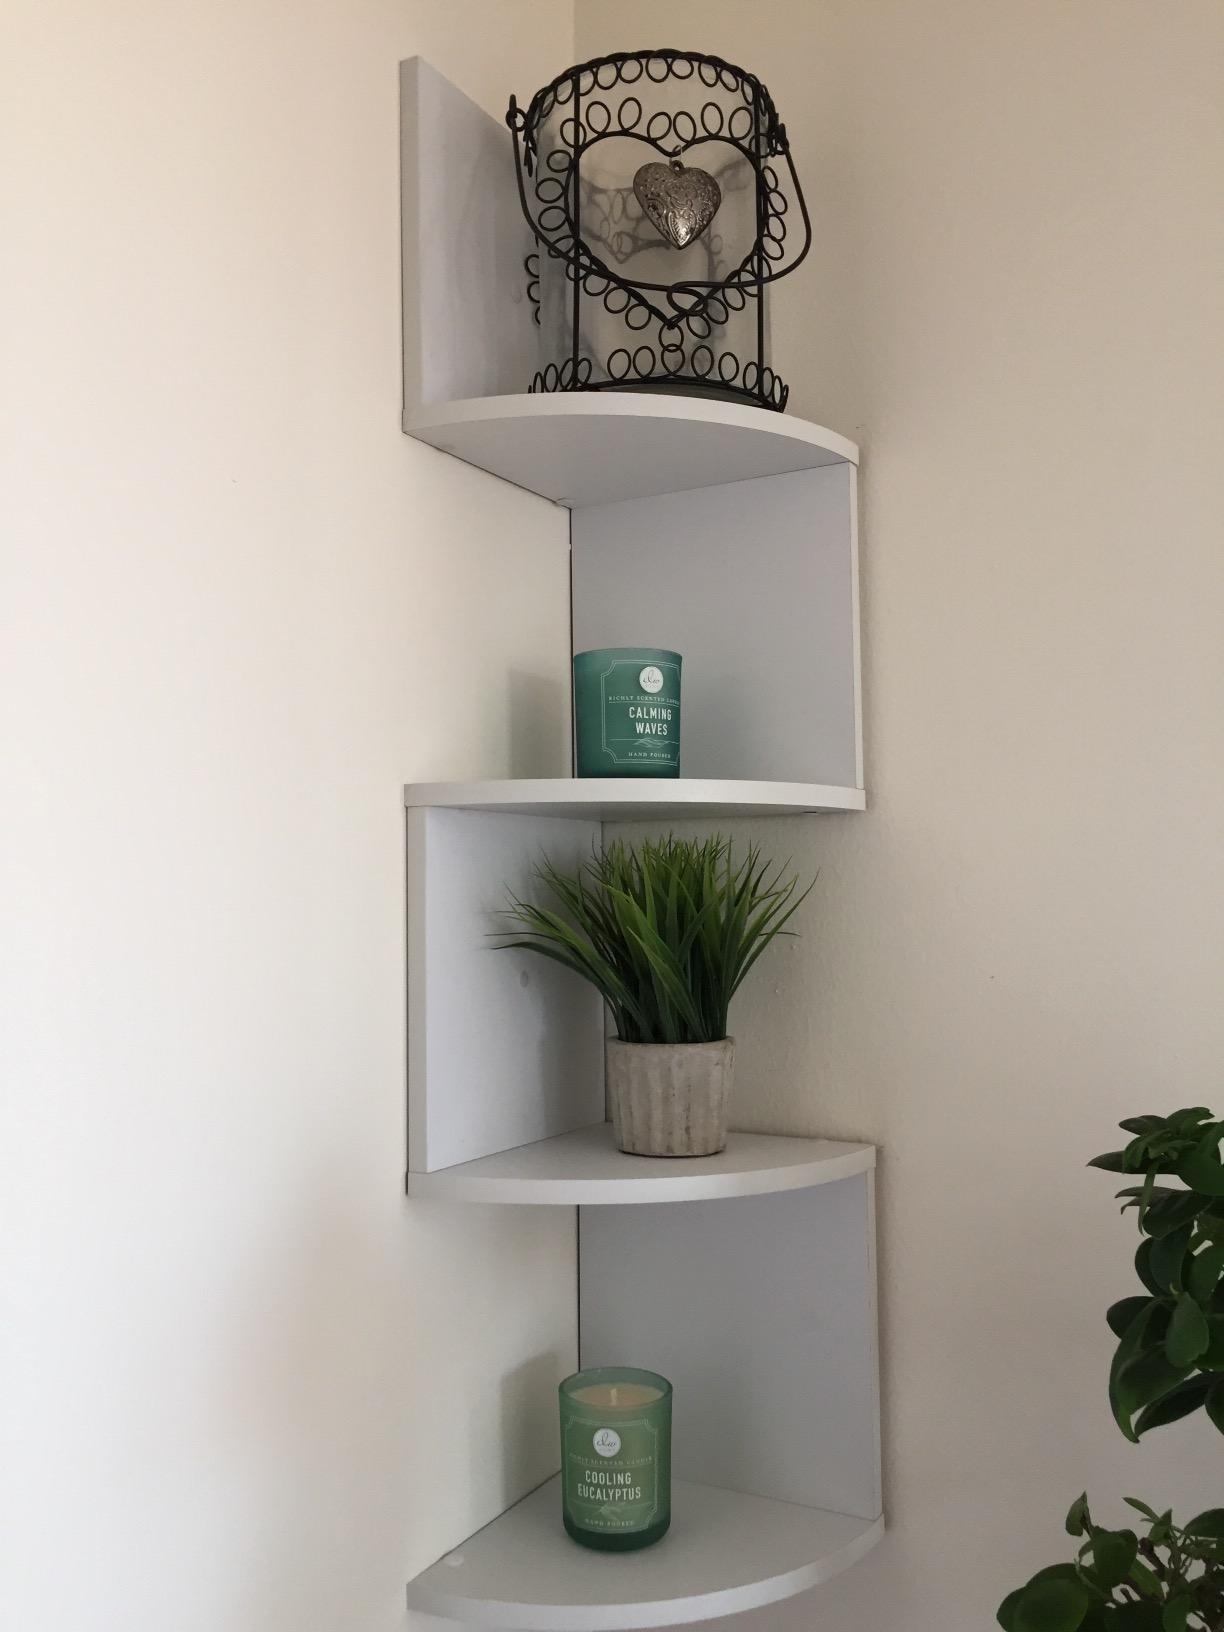 The shelves, which zig-zag, with each shelf having only one wall